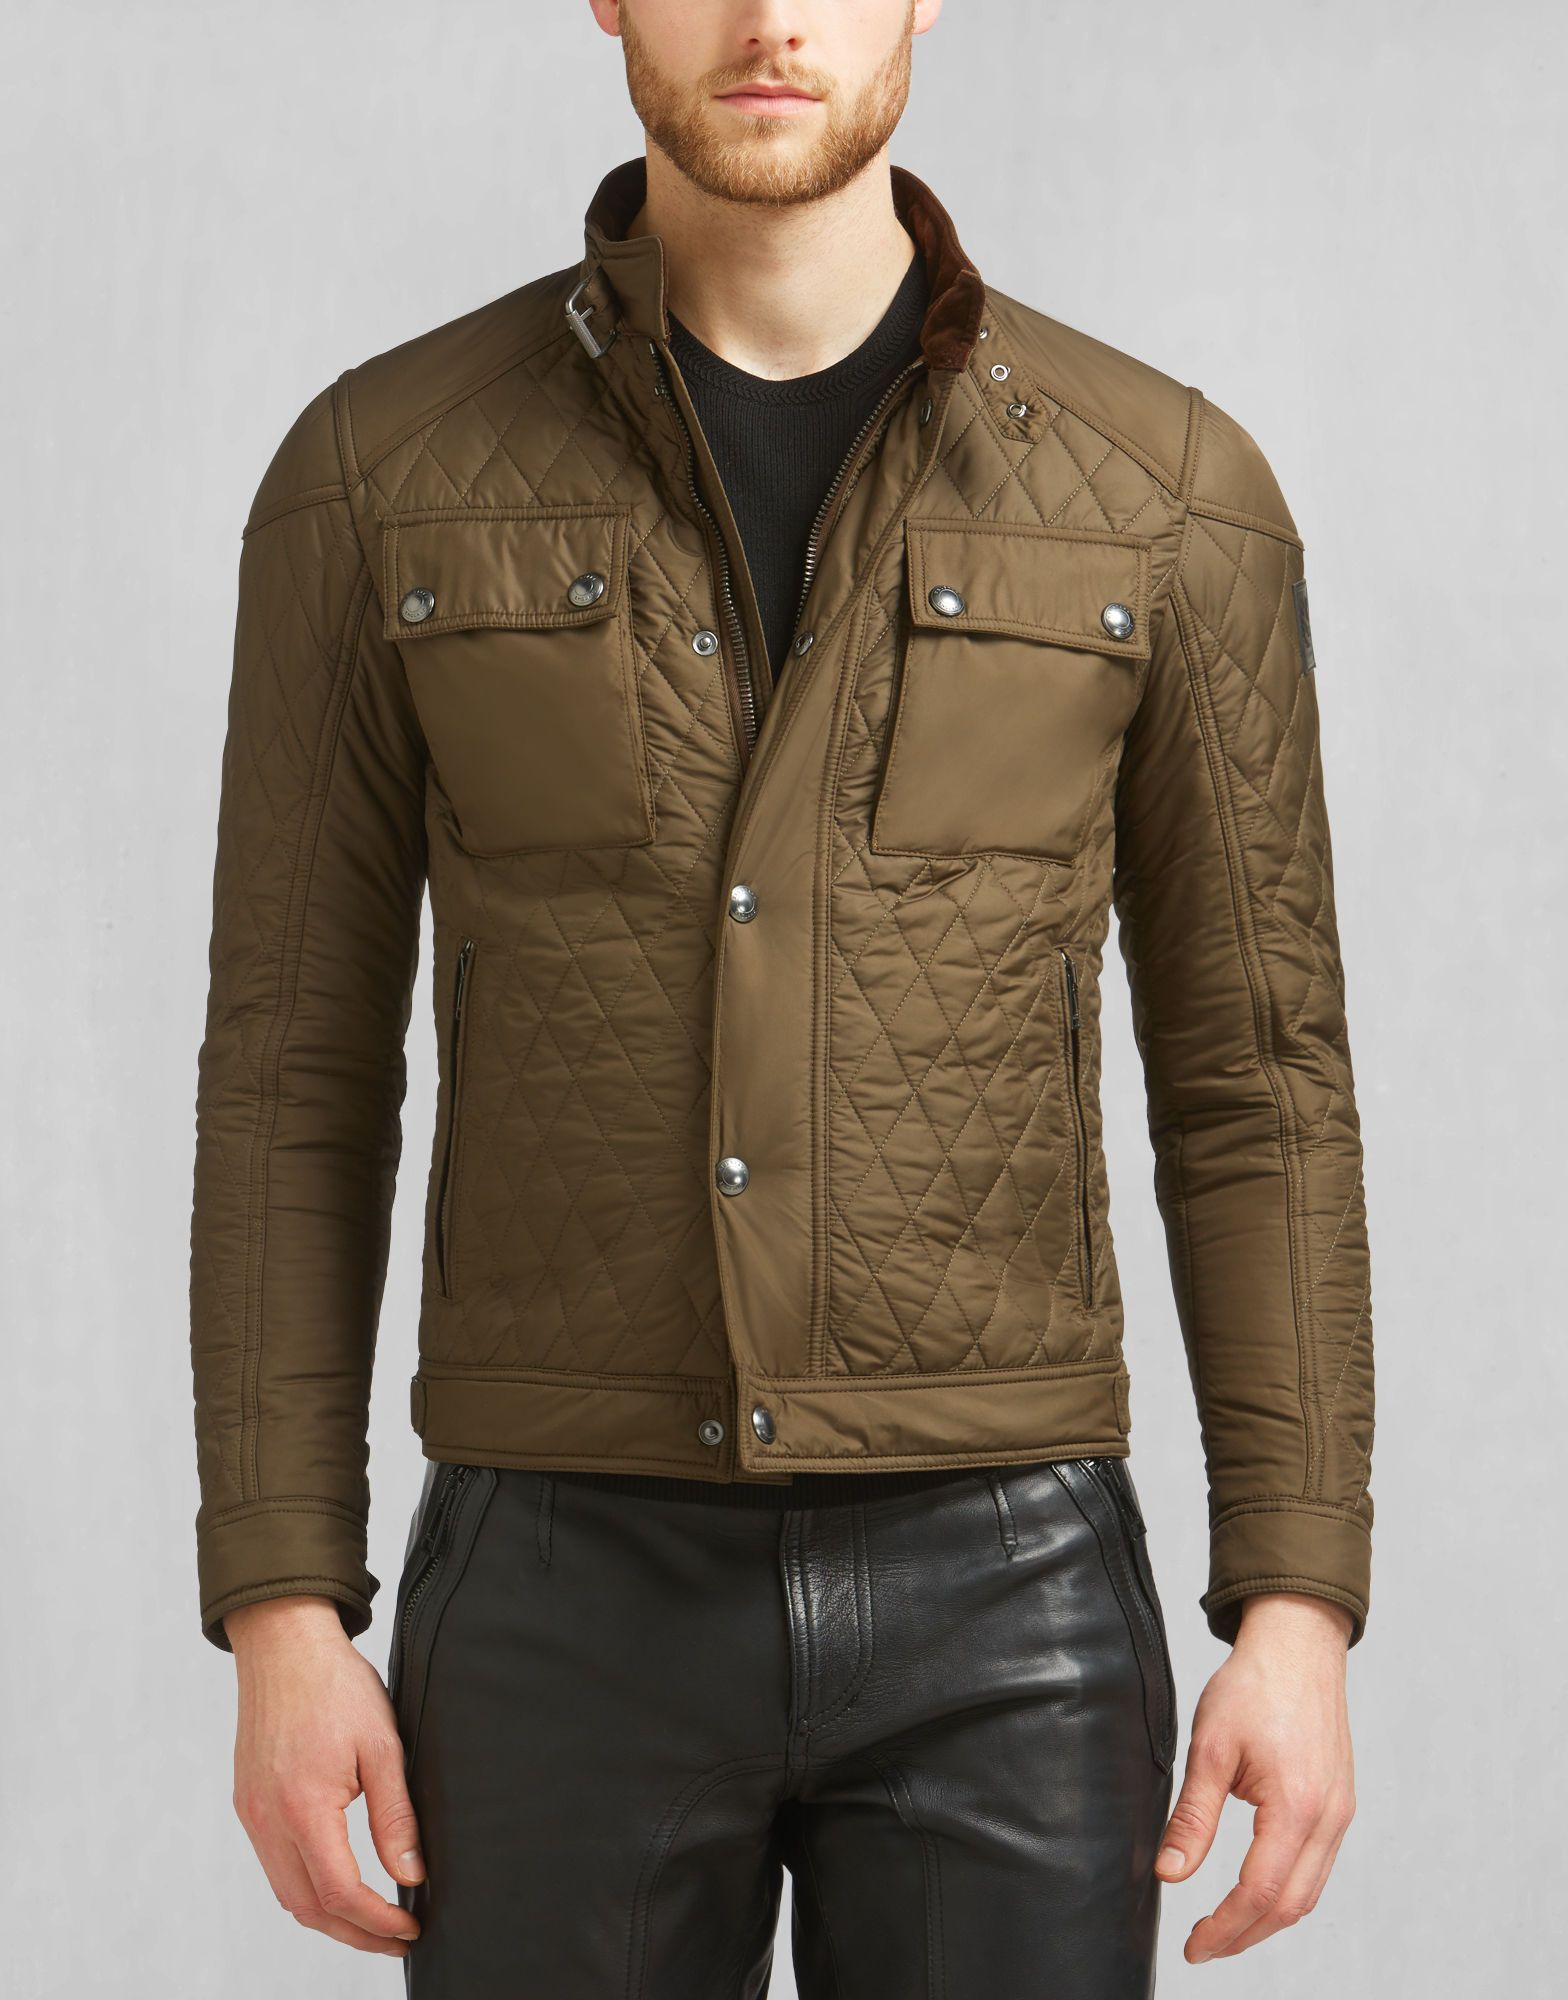 Racemaster Quilt Blouson Faded Olive Quilted Jackets Wardrobe